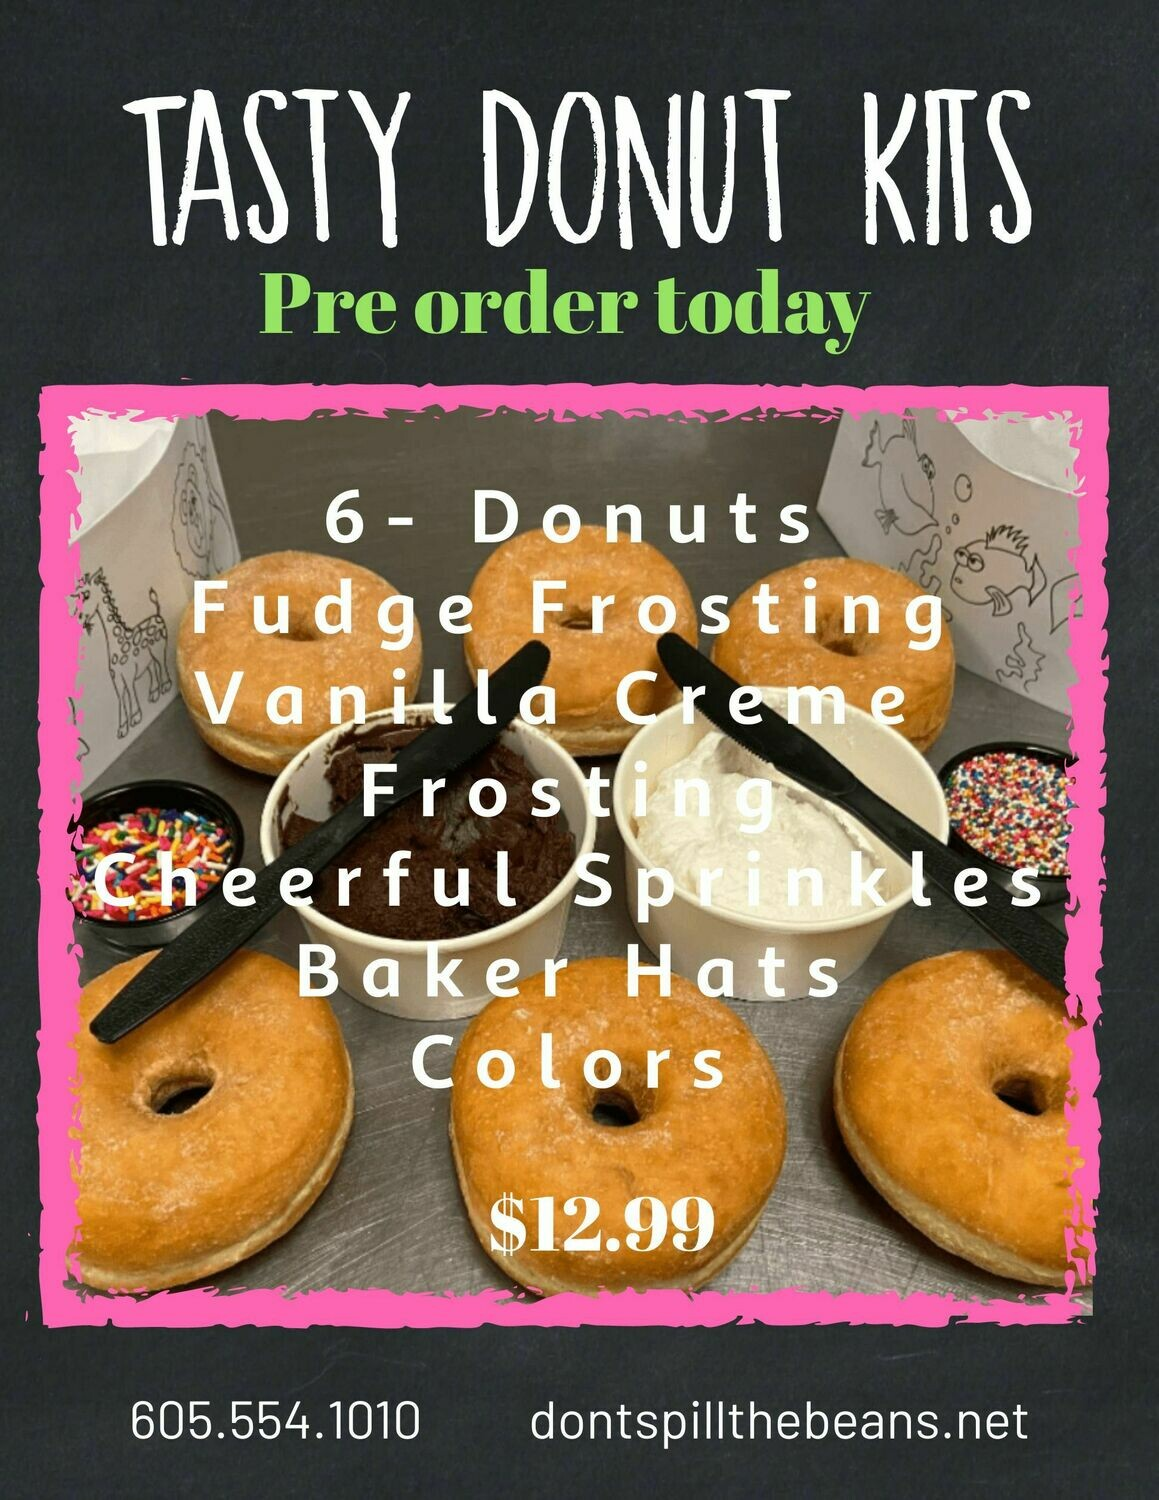 Tasty Donut Kits - available for pickup after 11 am